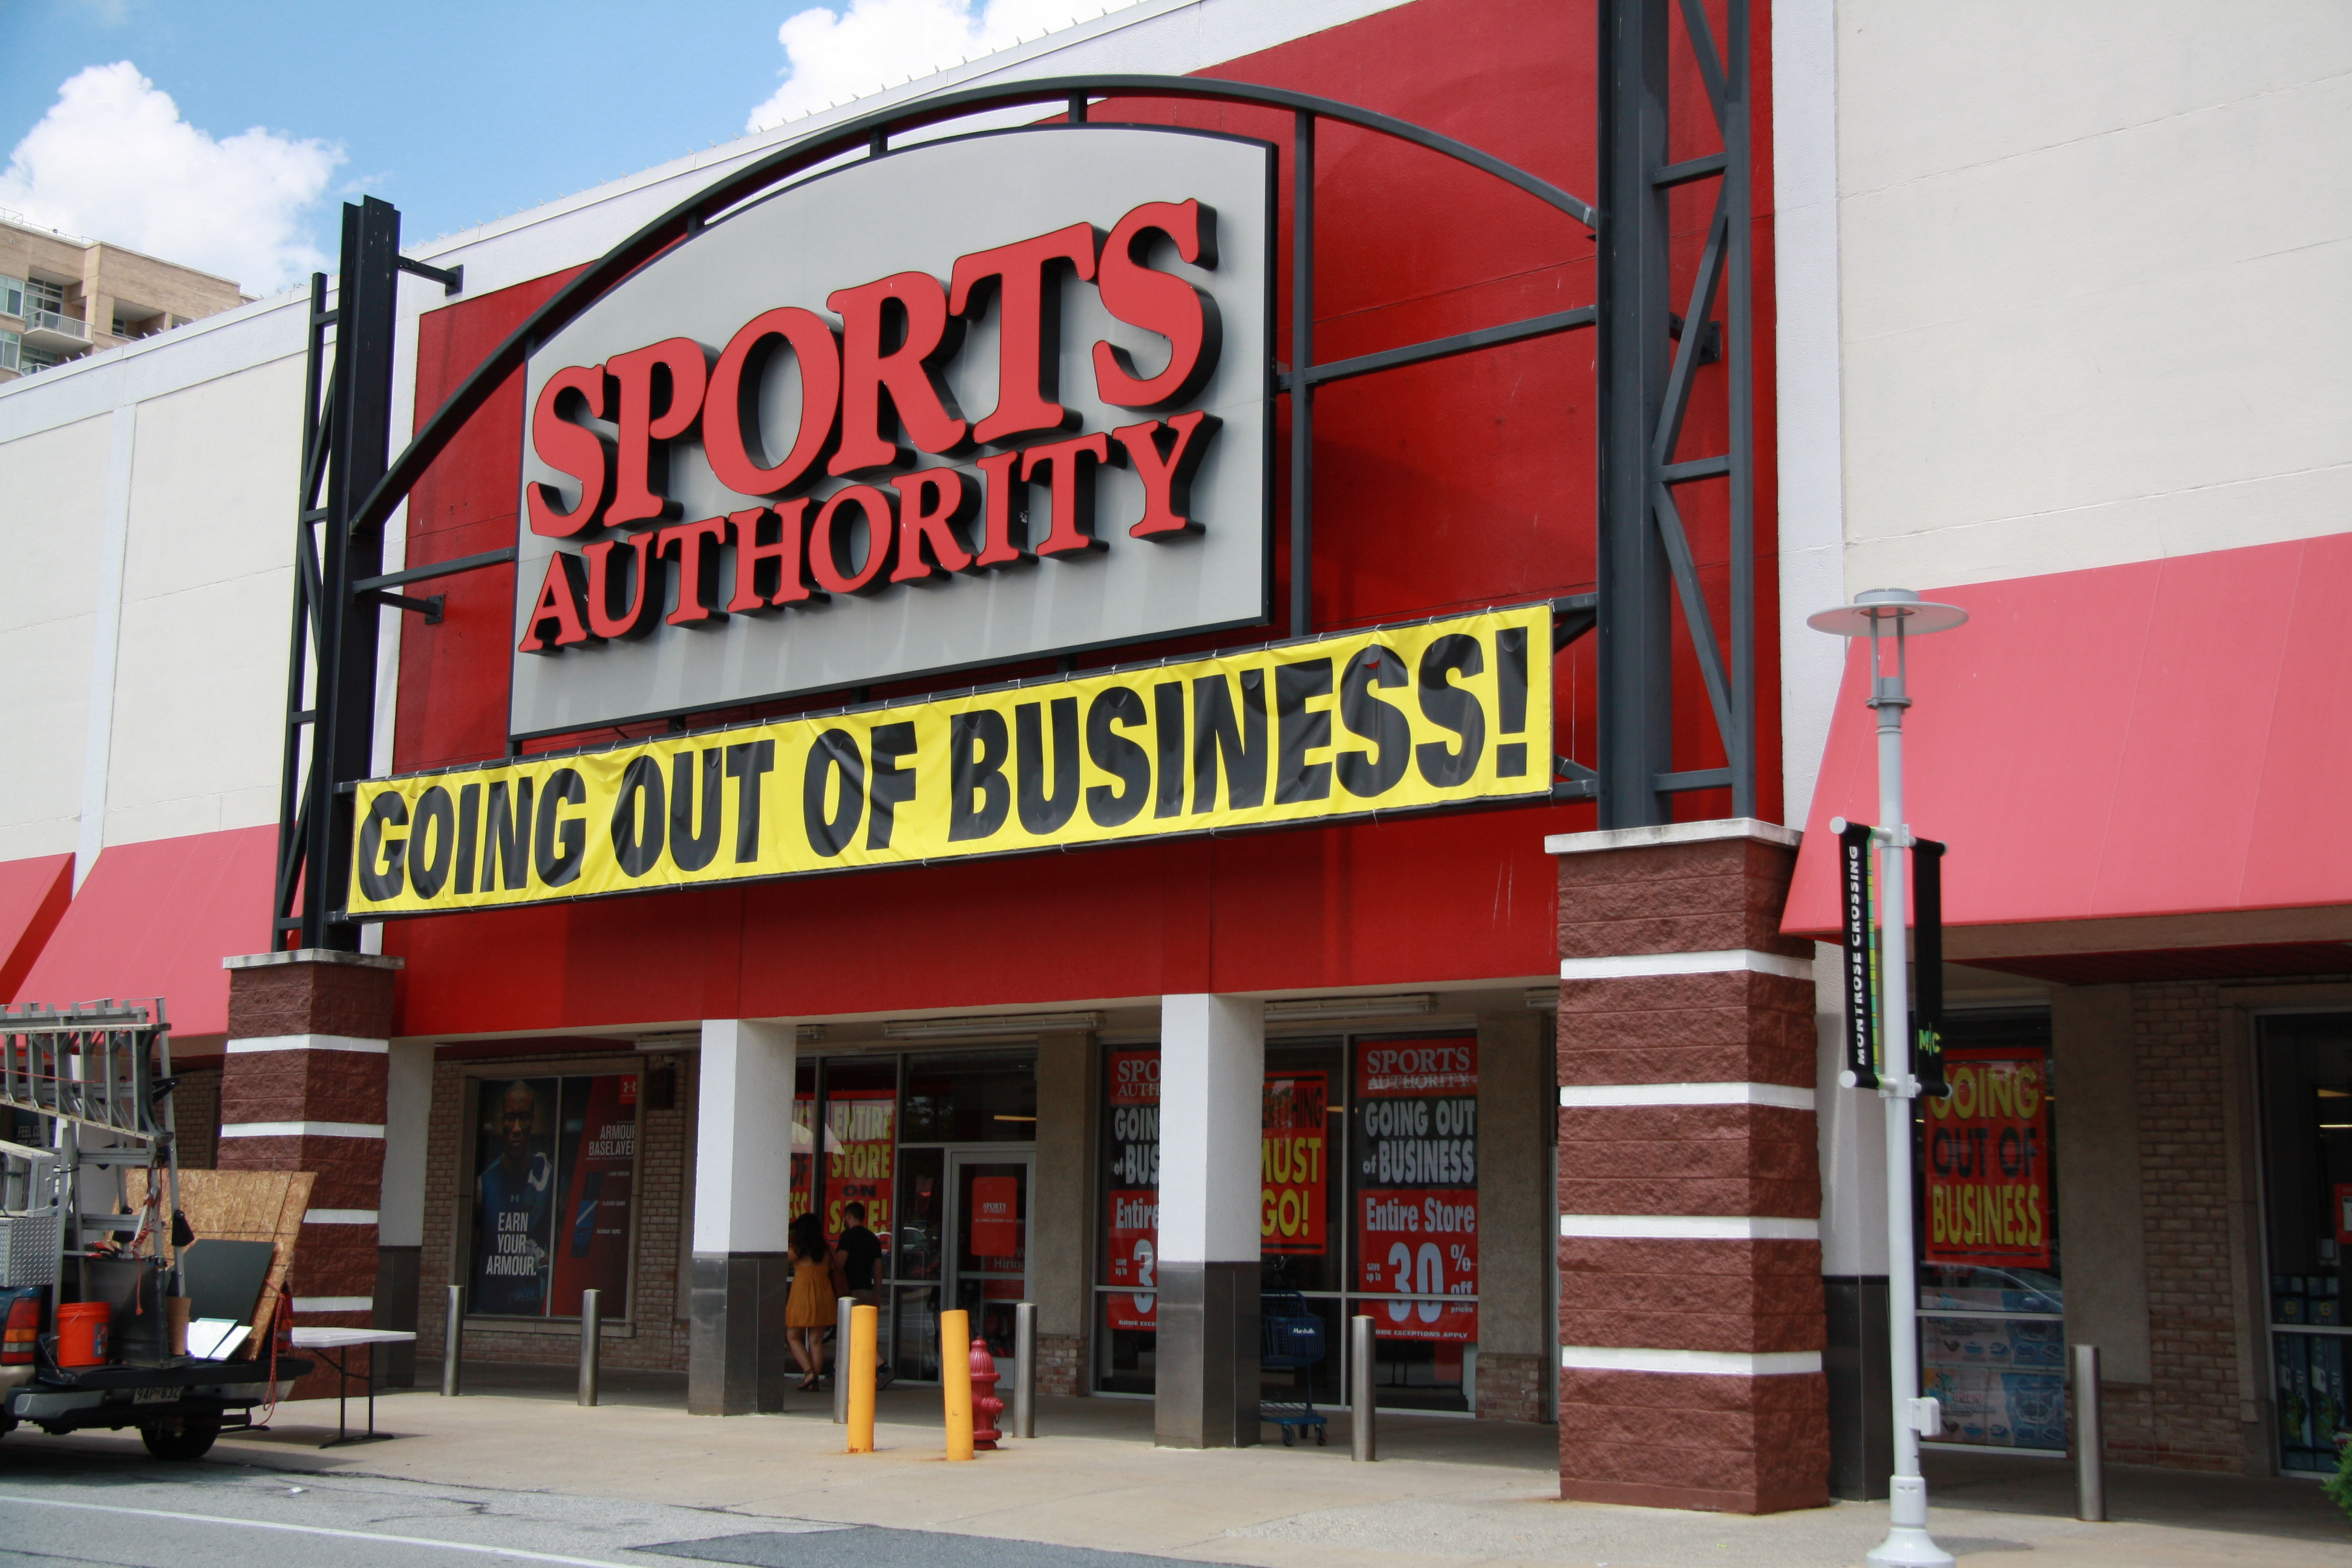 sports authority business going august before bethesda rockville closure holding notes web beat authoirty montrose crossing having